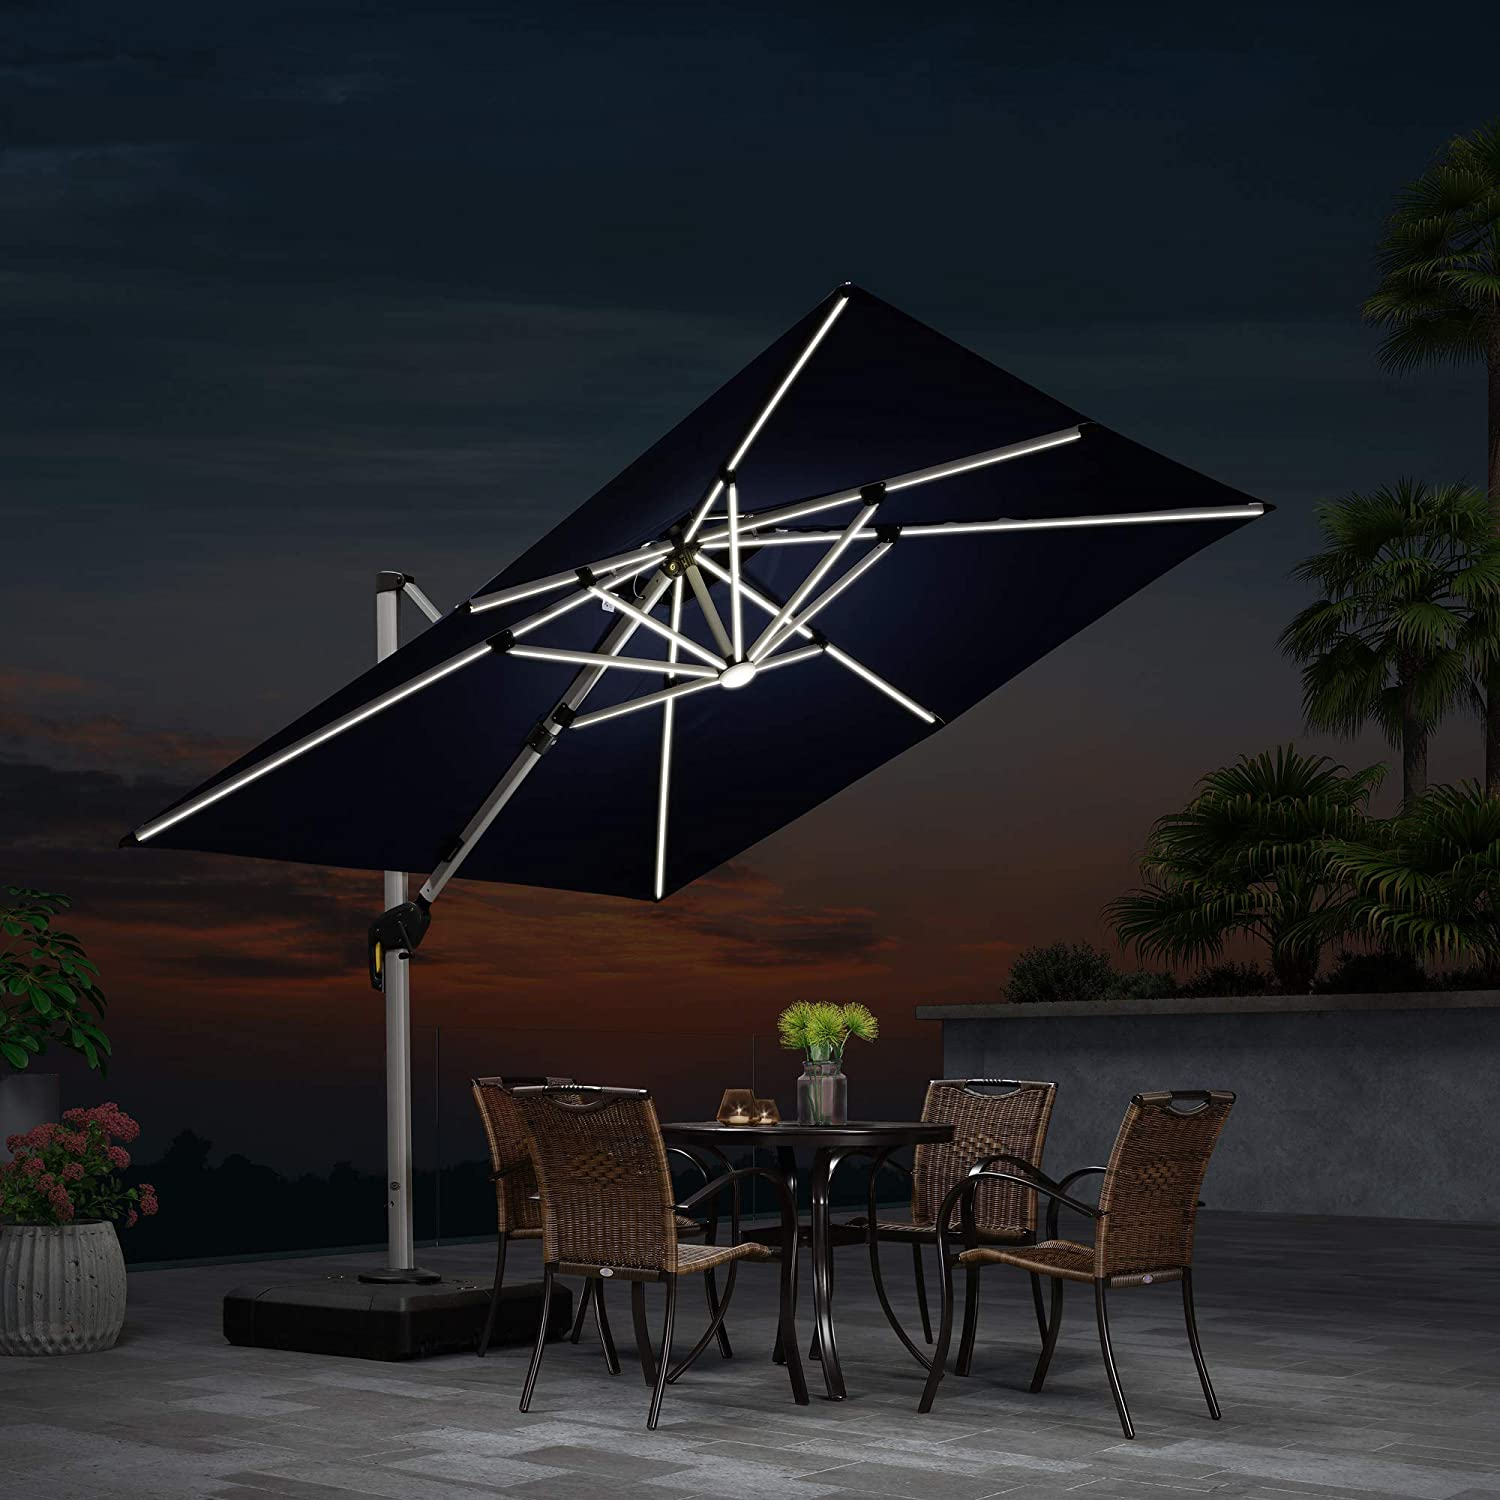 PURPLE LEAF 9 Feet Double Top Deluxe Solar Powered LED Square Patio Umbrella Offset Hanging Umbrella Outdoor Market Umbrella Garden Umbrella, Navy Blue